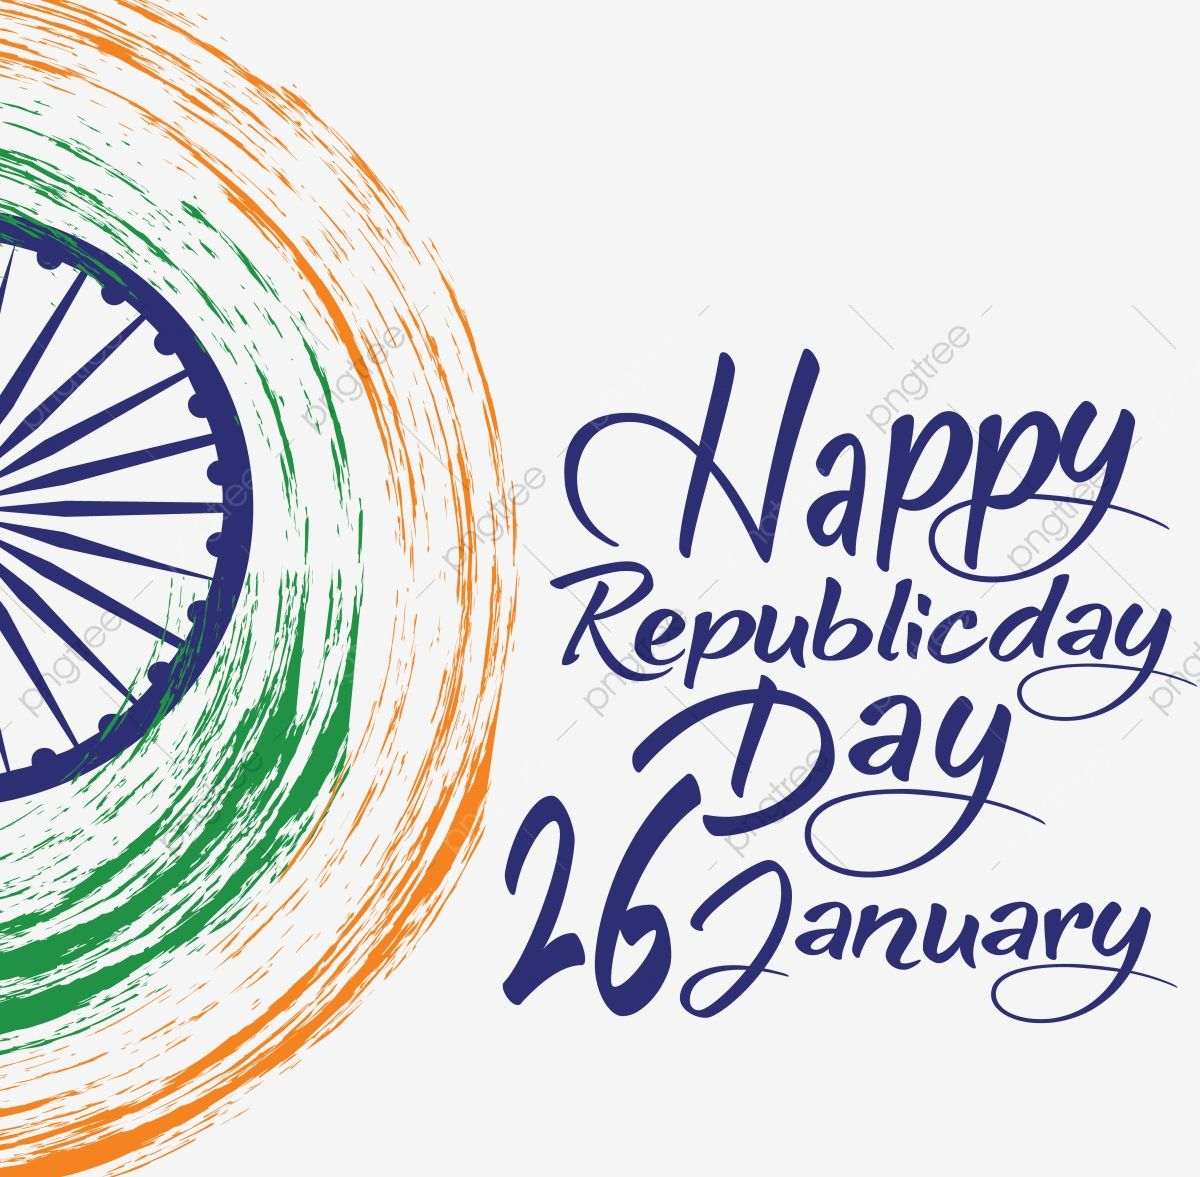 Indian Republic Day Concept With Text 26 January Vector Text Icons Day Icons Concept Icons Png And Vector With Transparent Background For Free Download In 2021 Republic Day Text Icons Patriotic Posters